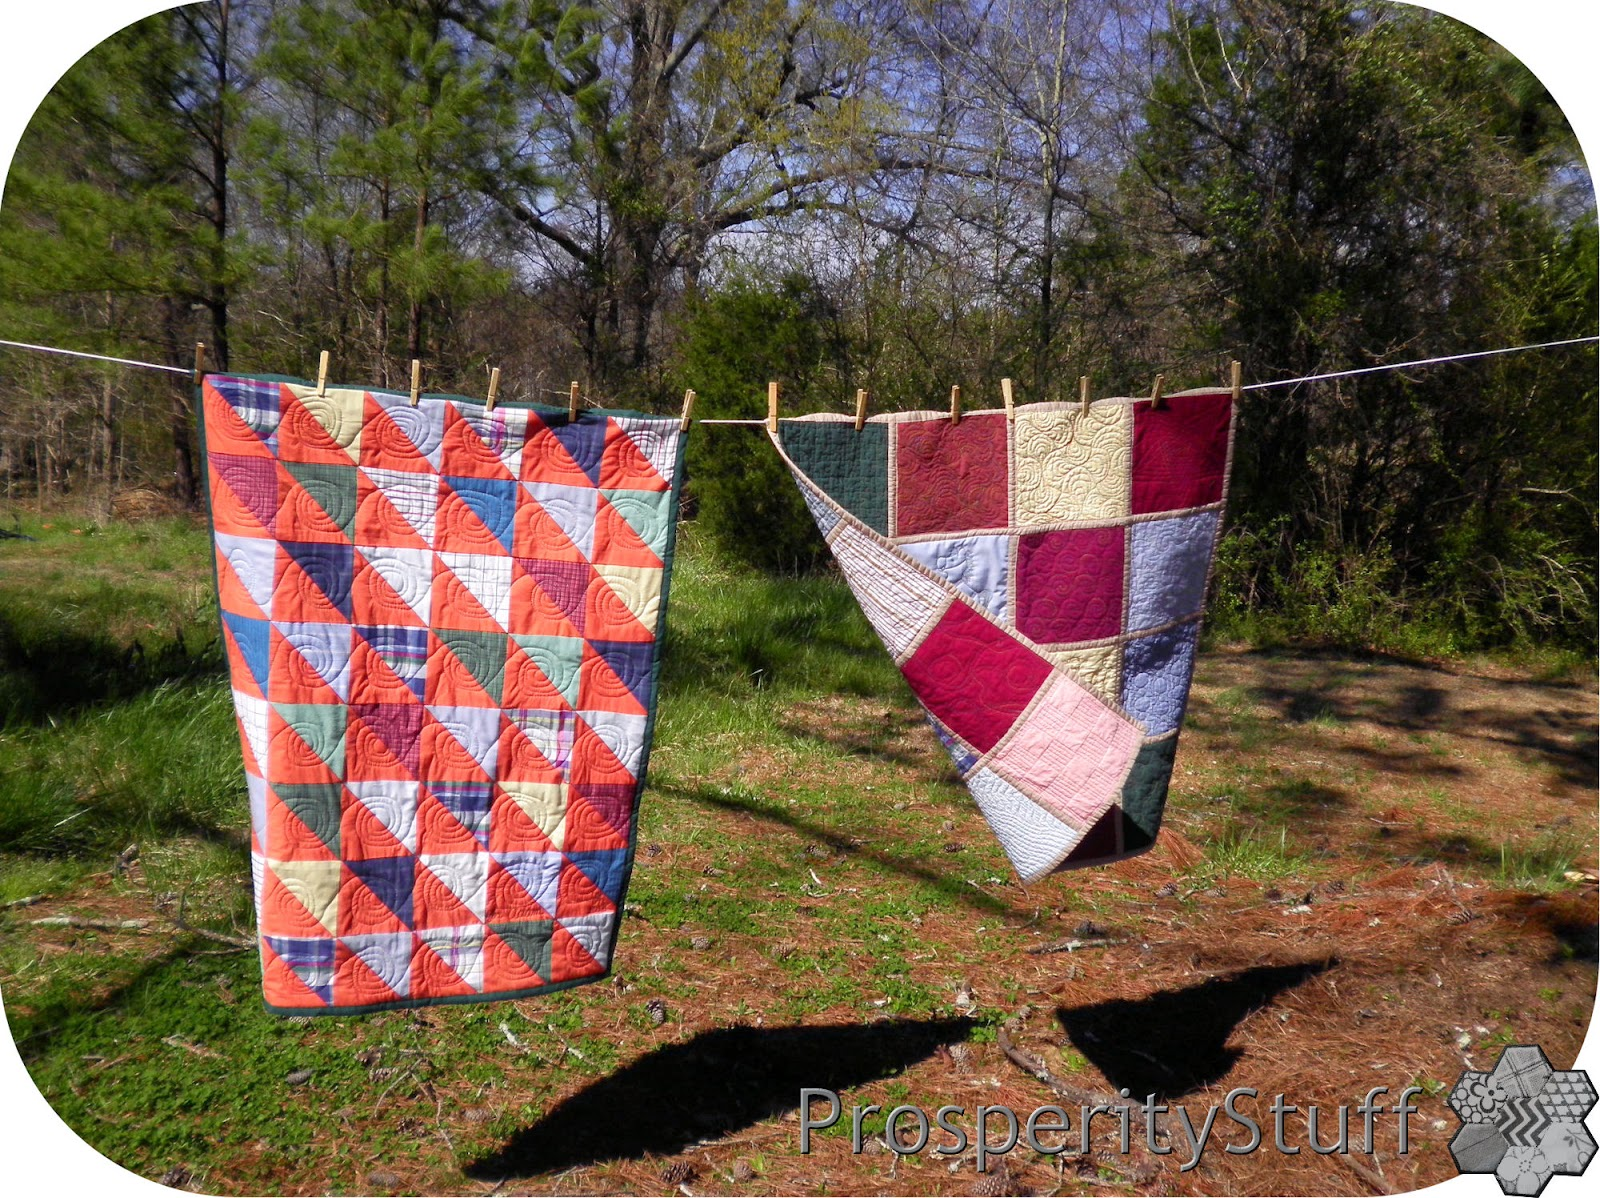 ProsperityStuff Shirt Quilts on Clothesline